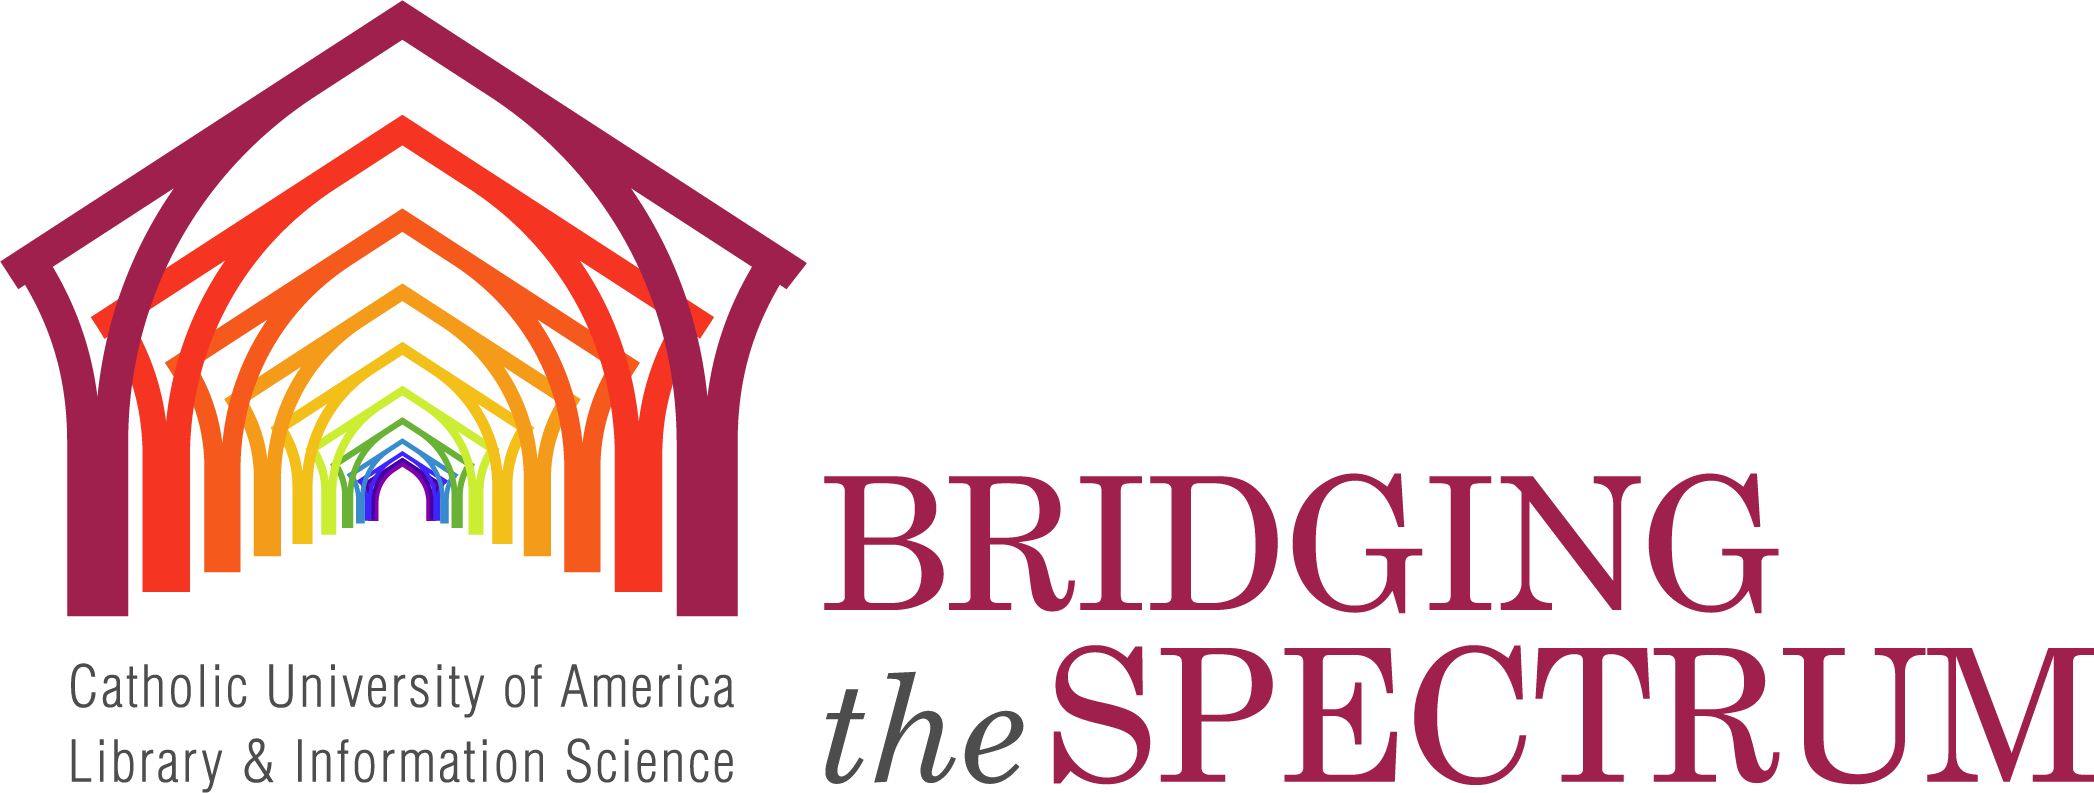 Bridging the Spectrum logo